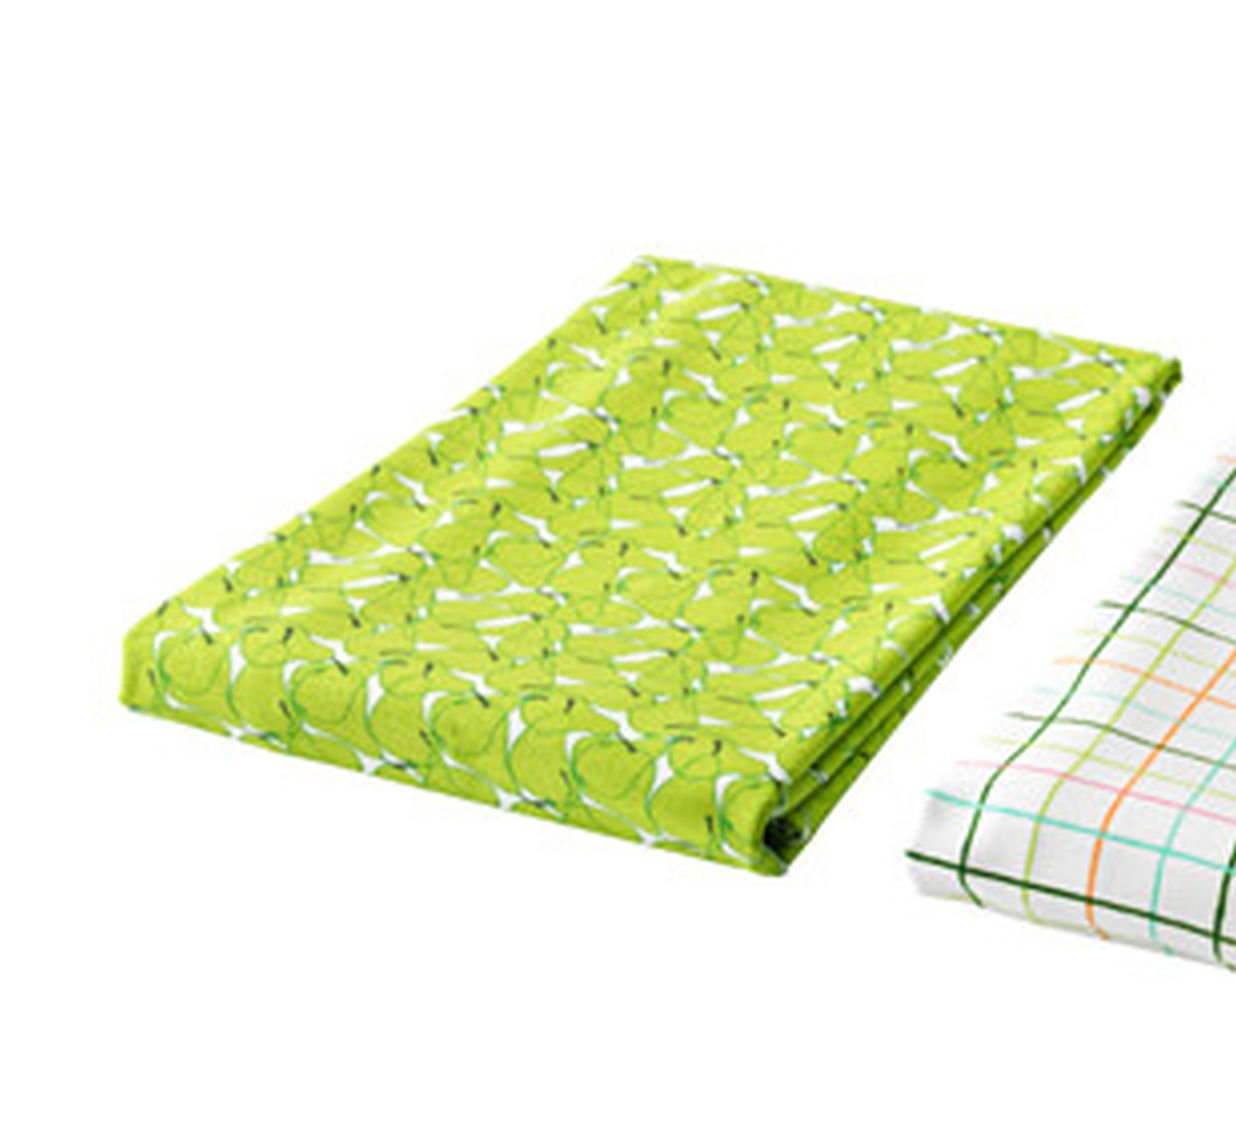 IKEA SOMMAR 2015 TABLECLOTH Pears GREEN White Cotton Fruit Limited Edition Summer Design